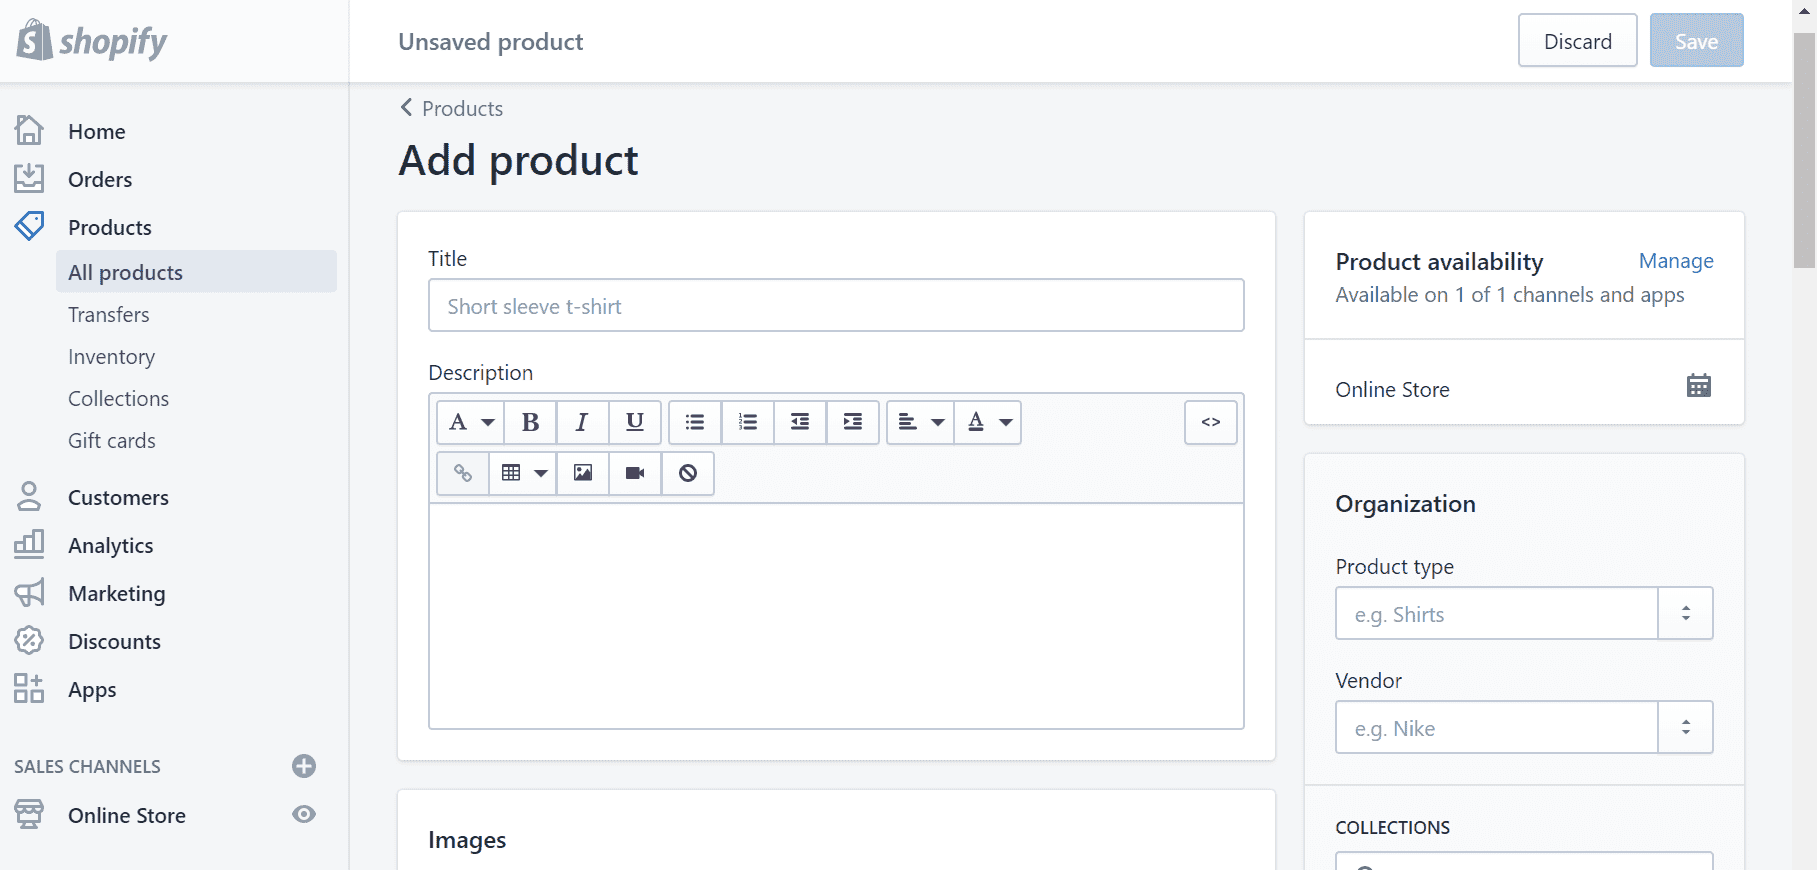 shopify features addproduct